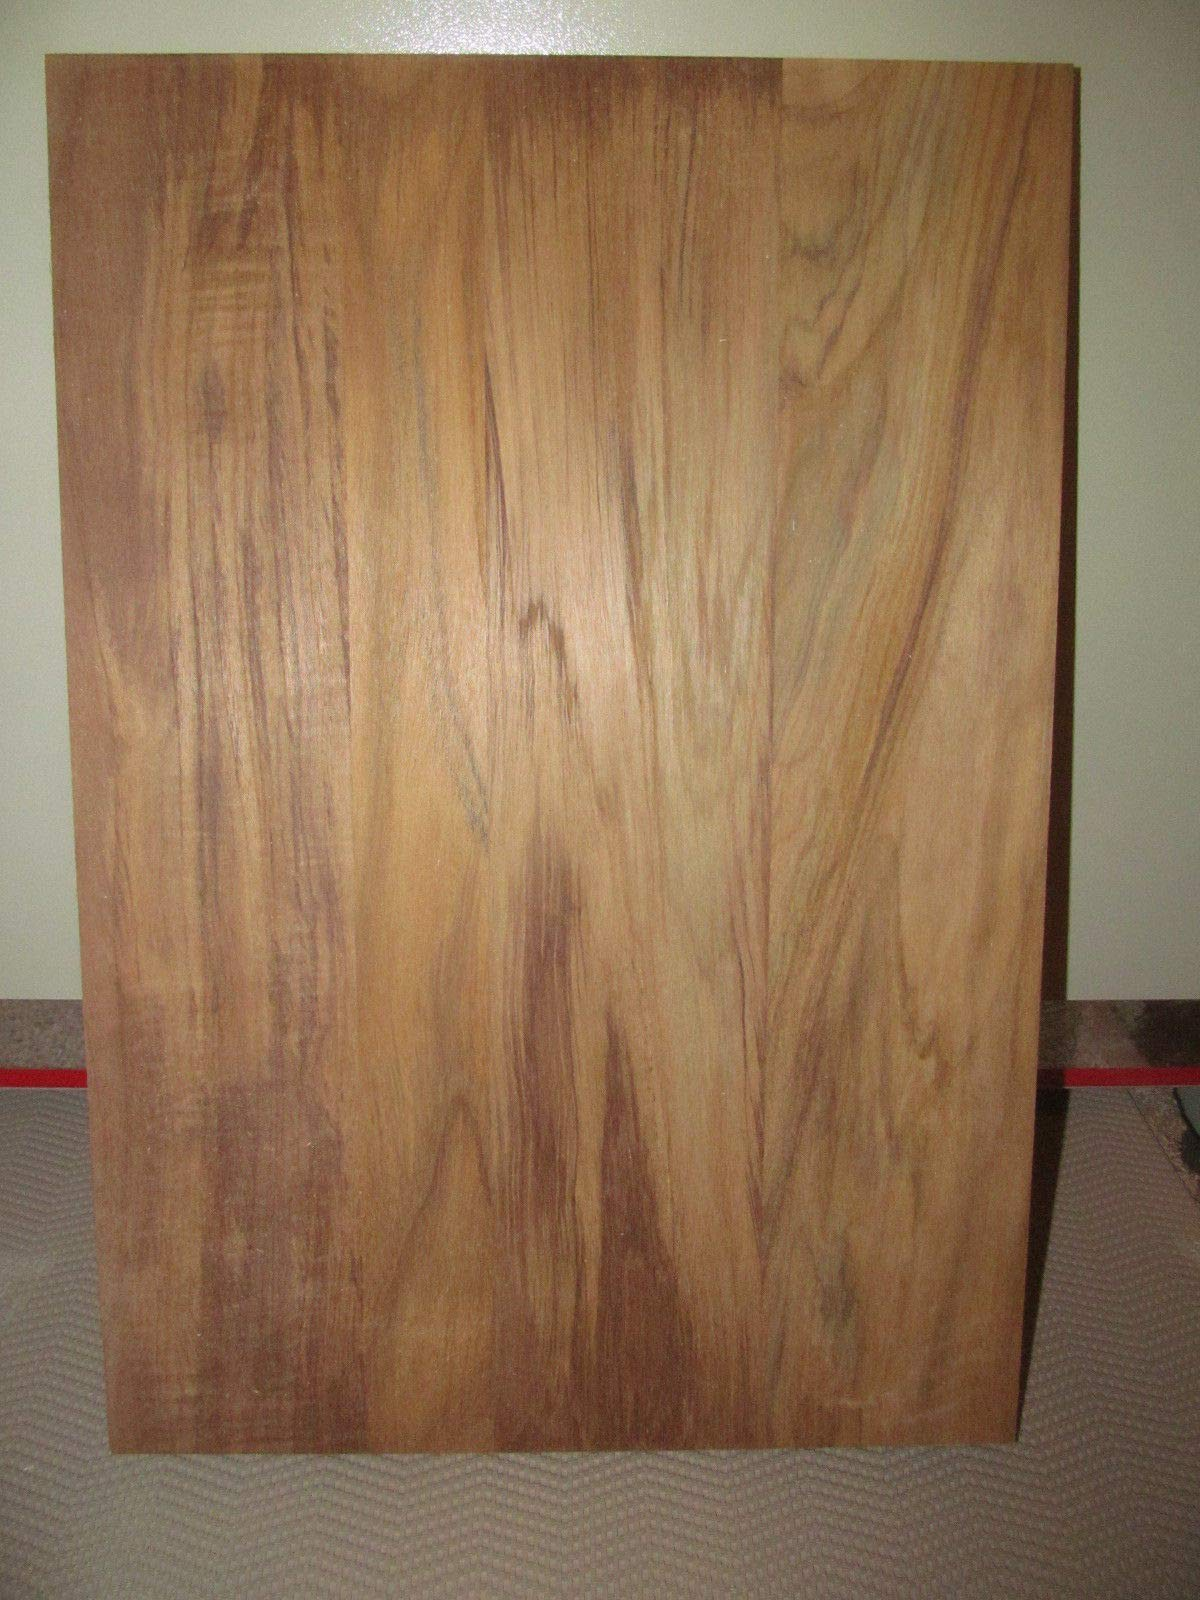 Wood) Beautiful Wide Sanded KILN Dried Teak Panels Wood Lumber 24 X 14 X 3/4'' by (High Quality Wood)